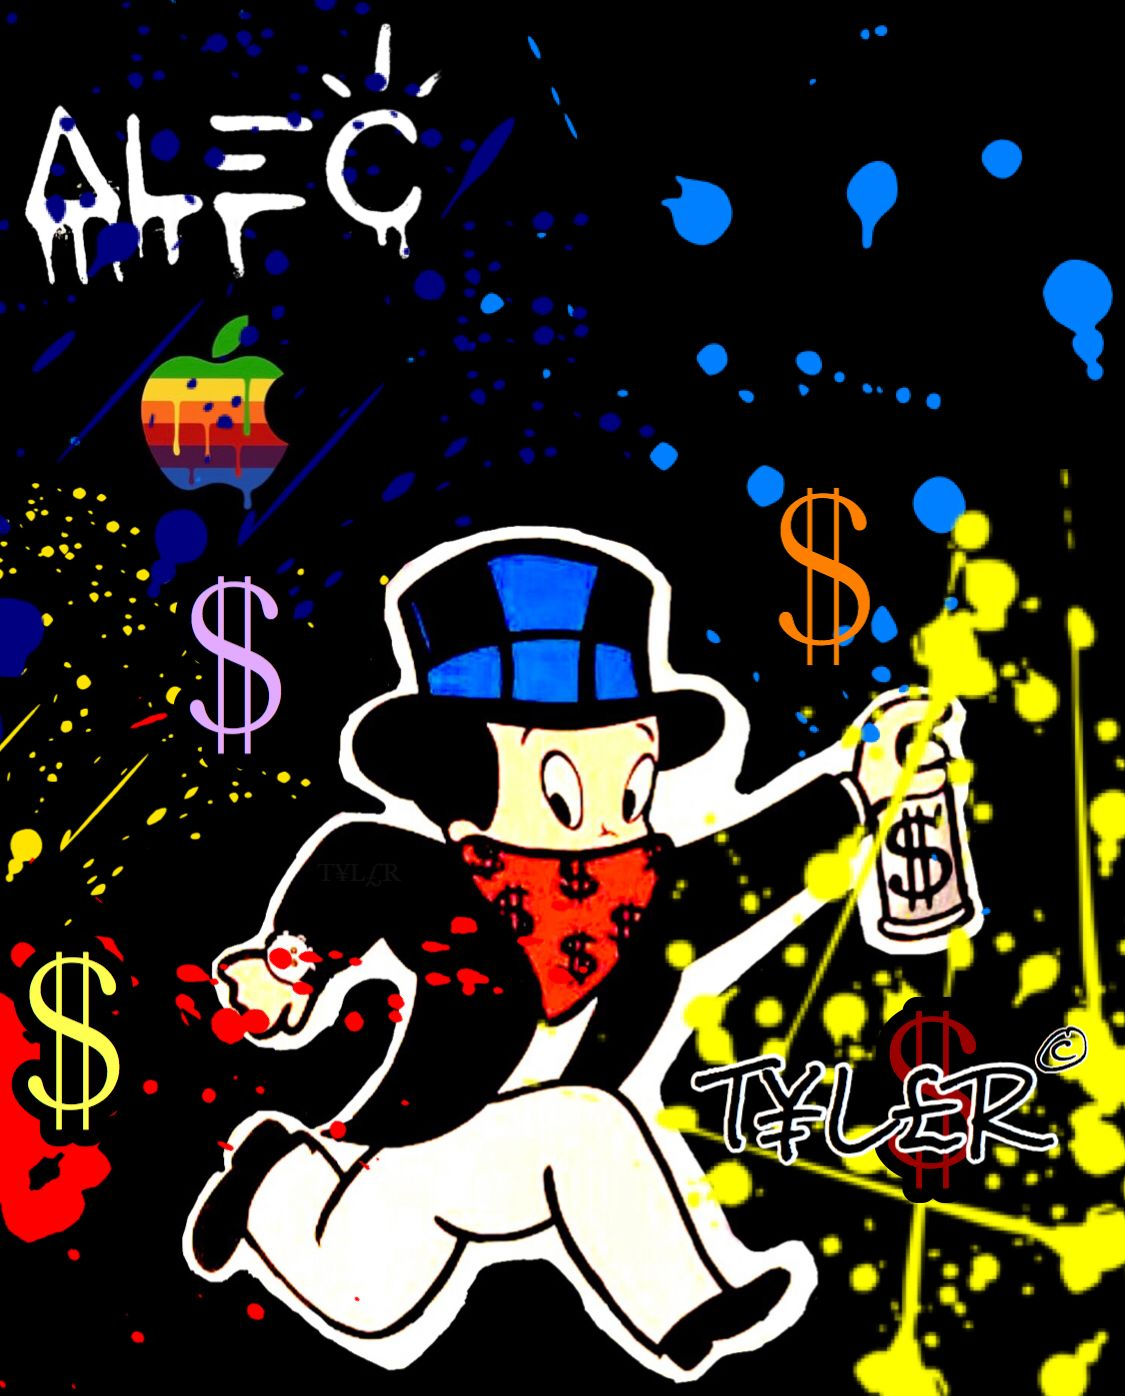 Alec Monopoly Inspired Wallpaper Created By T L R C For Apple